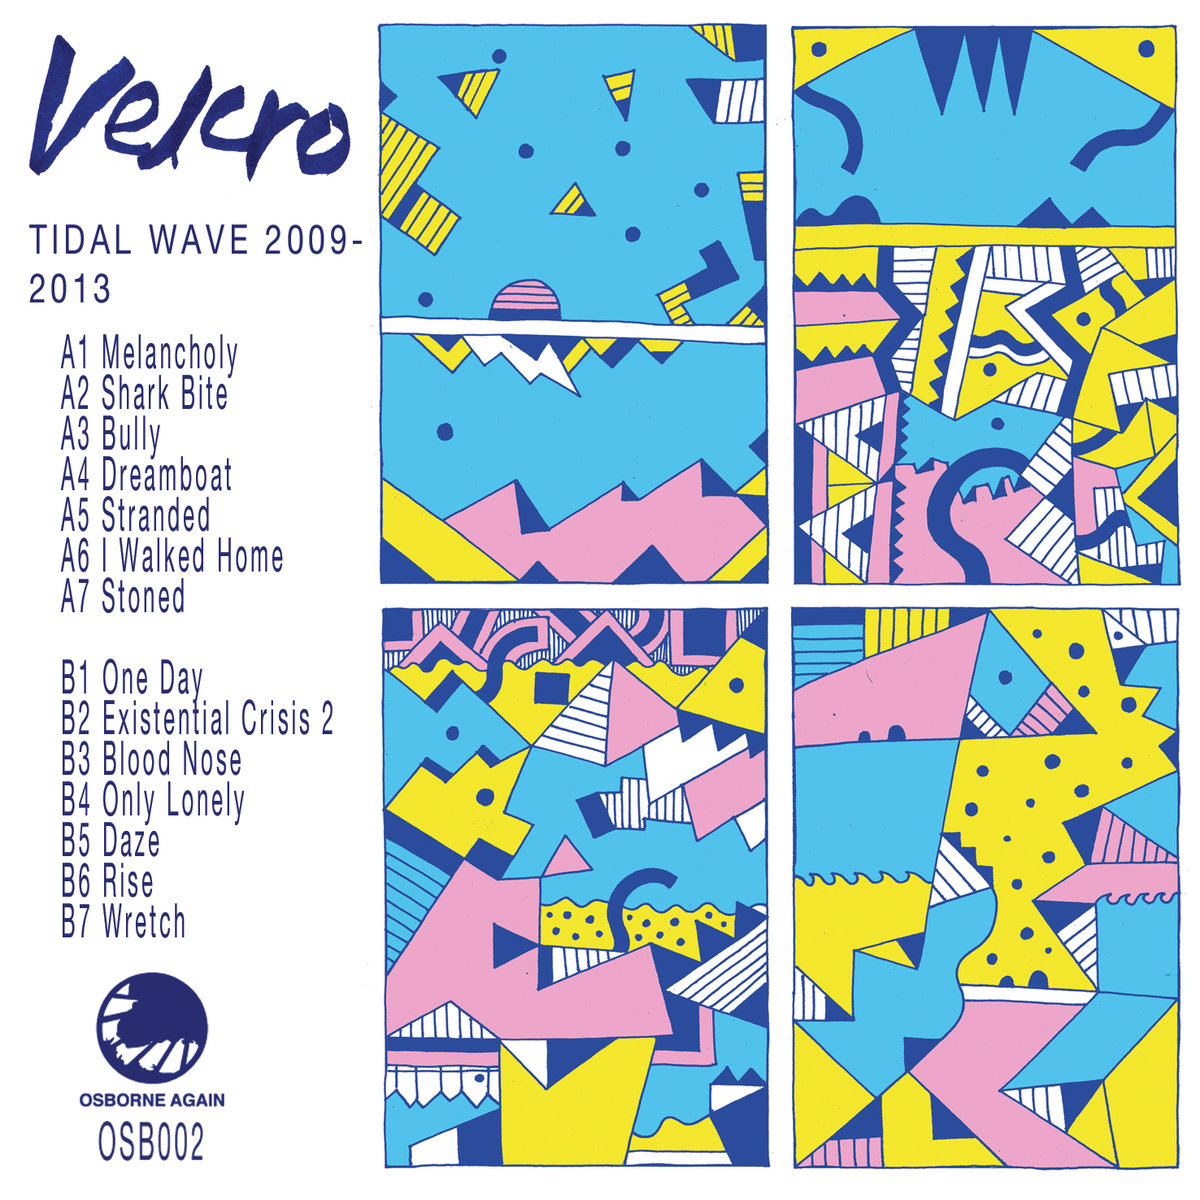 Velcro 'Tidel Wave 2009-2013' (Album)